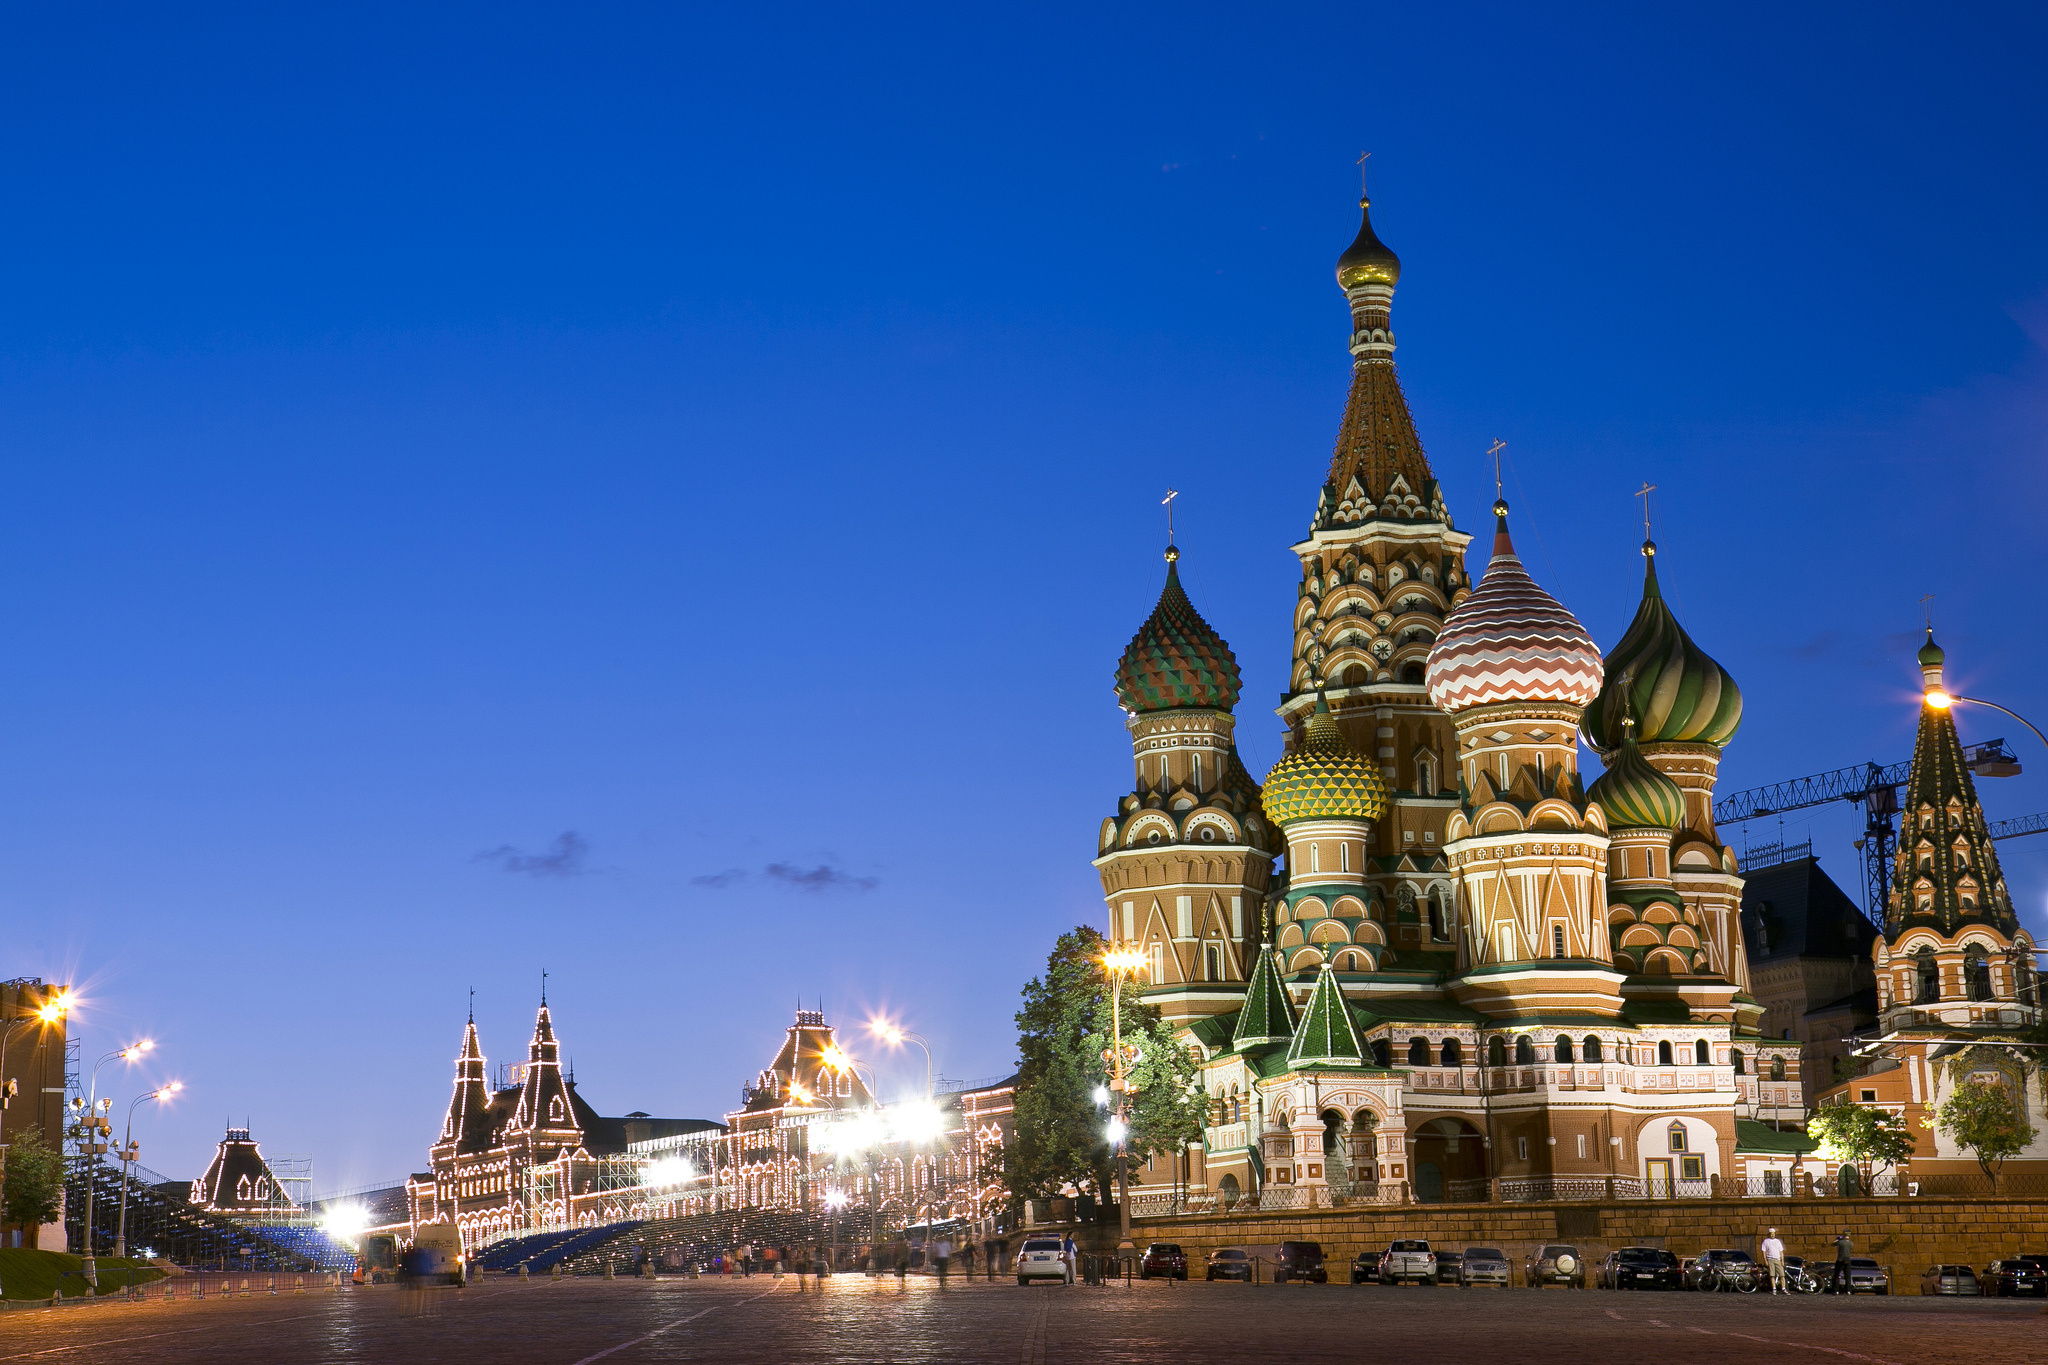 capital Moscow Russia a city wallpaper background 2048x1365